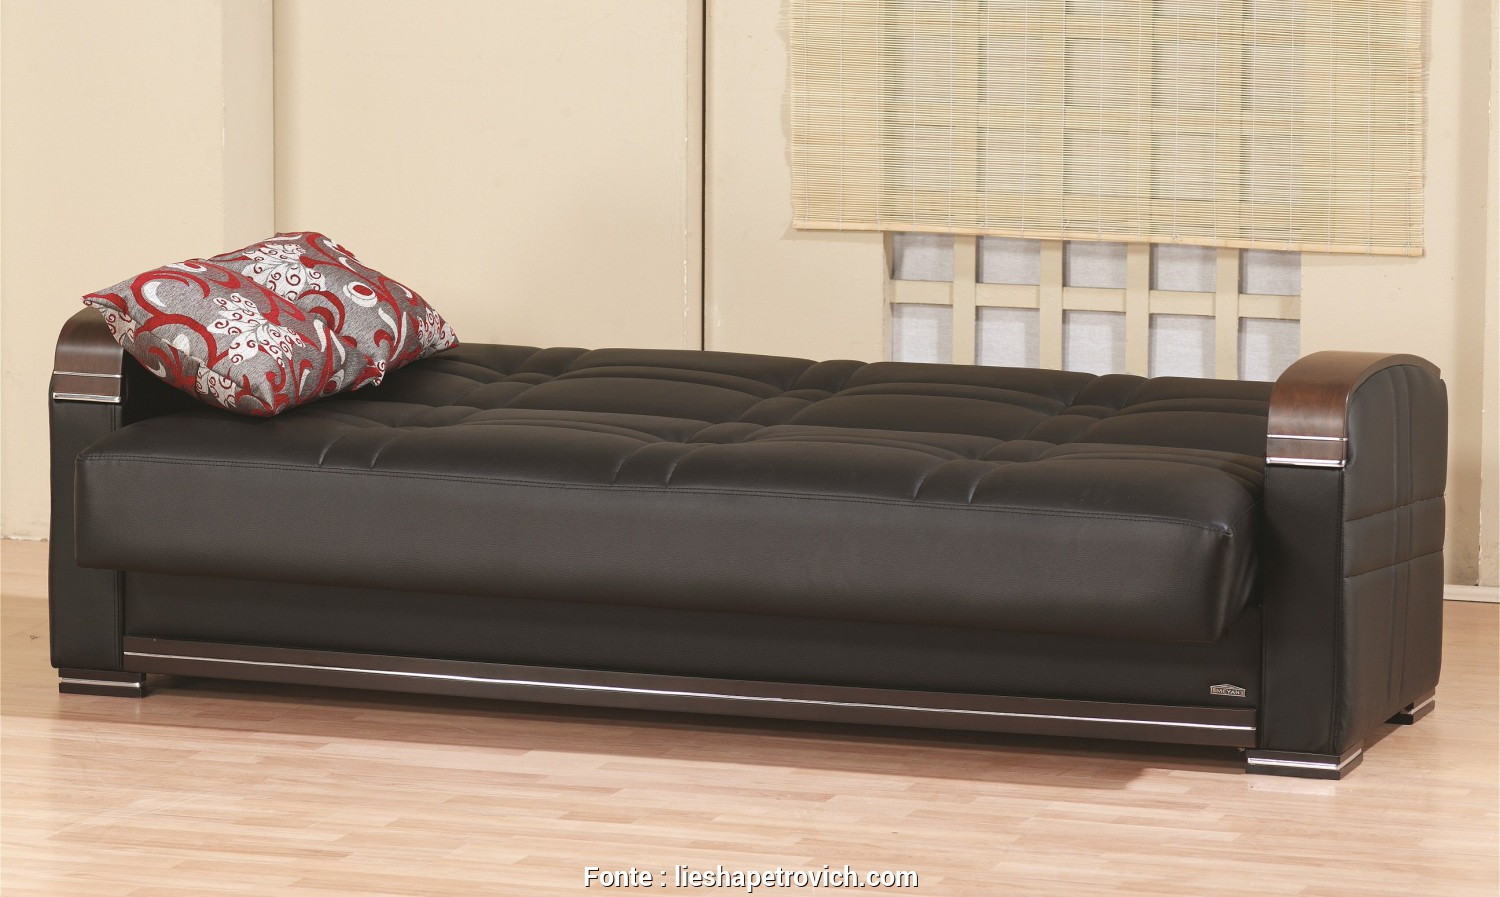 Klippan Ikea Usa, Eccezionale Appealing Black Leather Couch Plus Bronx Sofa, By Empire Furniture, Ikea Klippan To Inspire Your